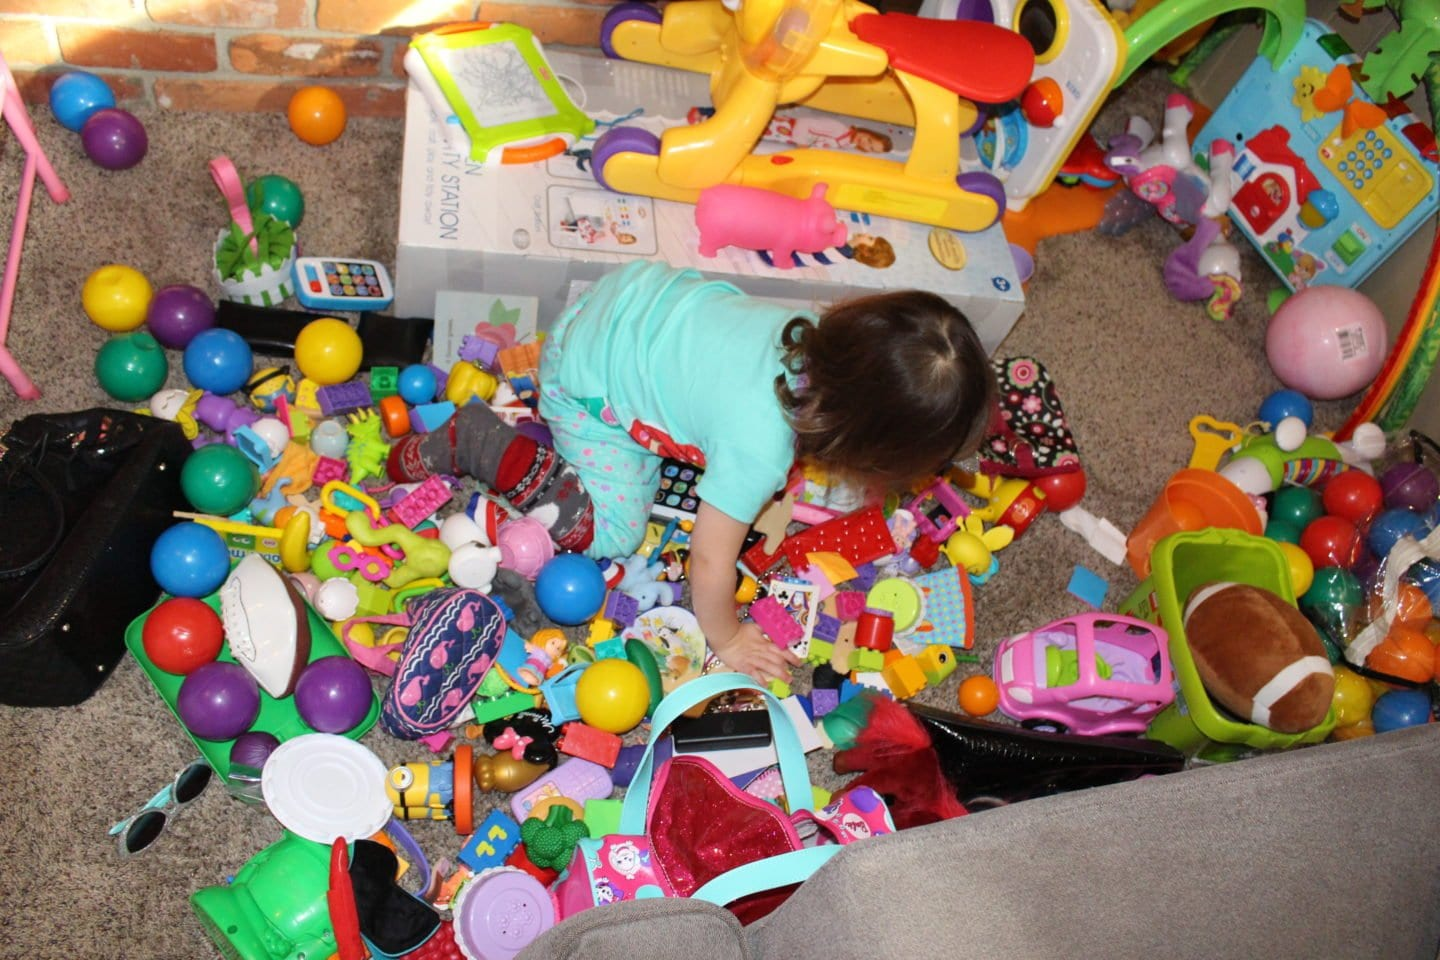 Managing Toddler Toy Clutter